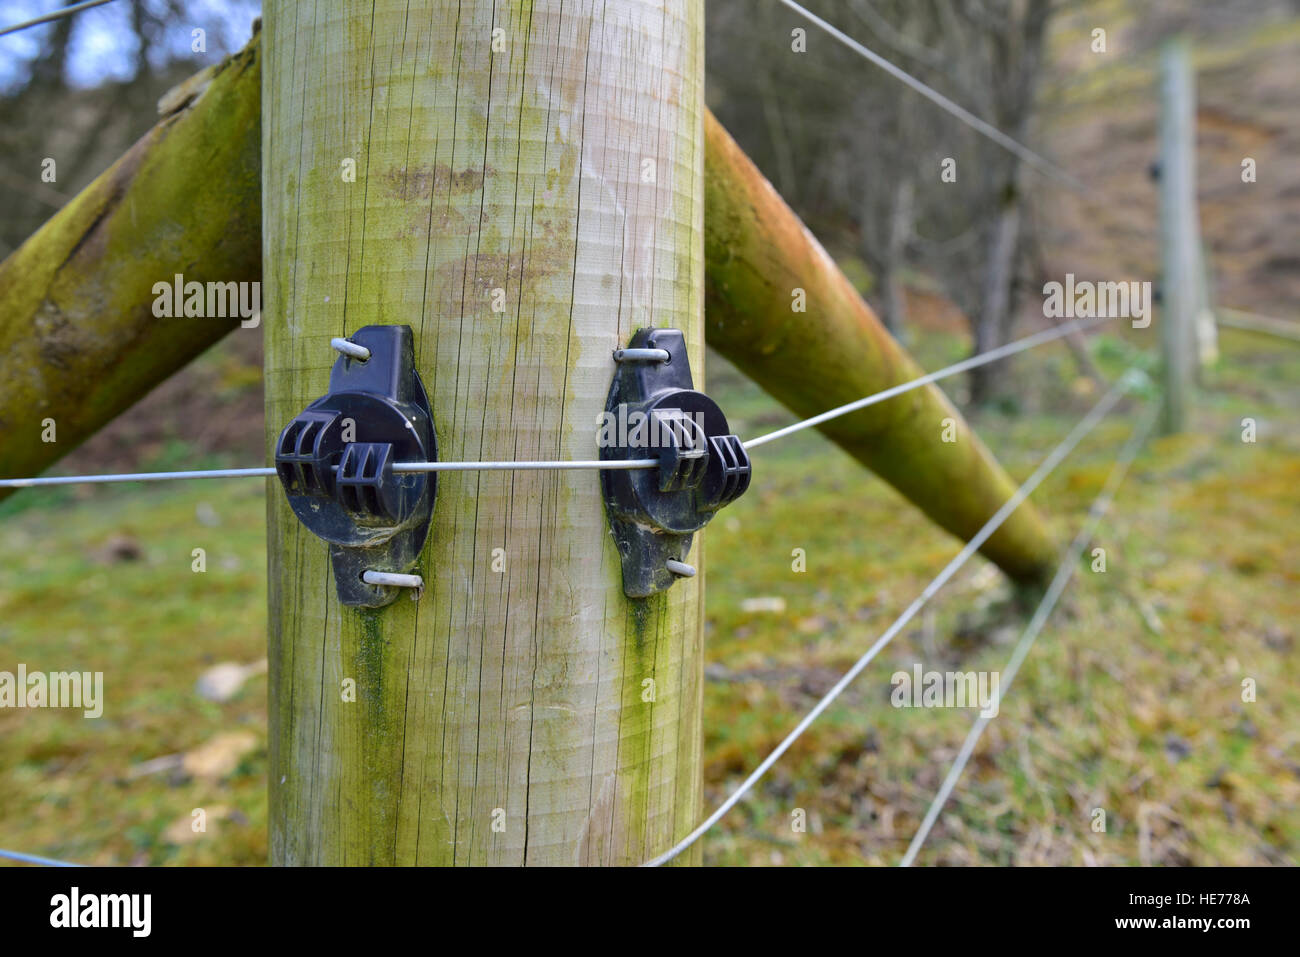 Electric fence wire going over insulators on wooden fence post, England - Stock Image